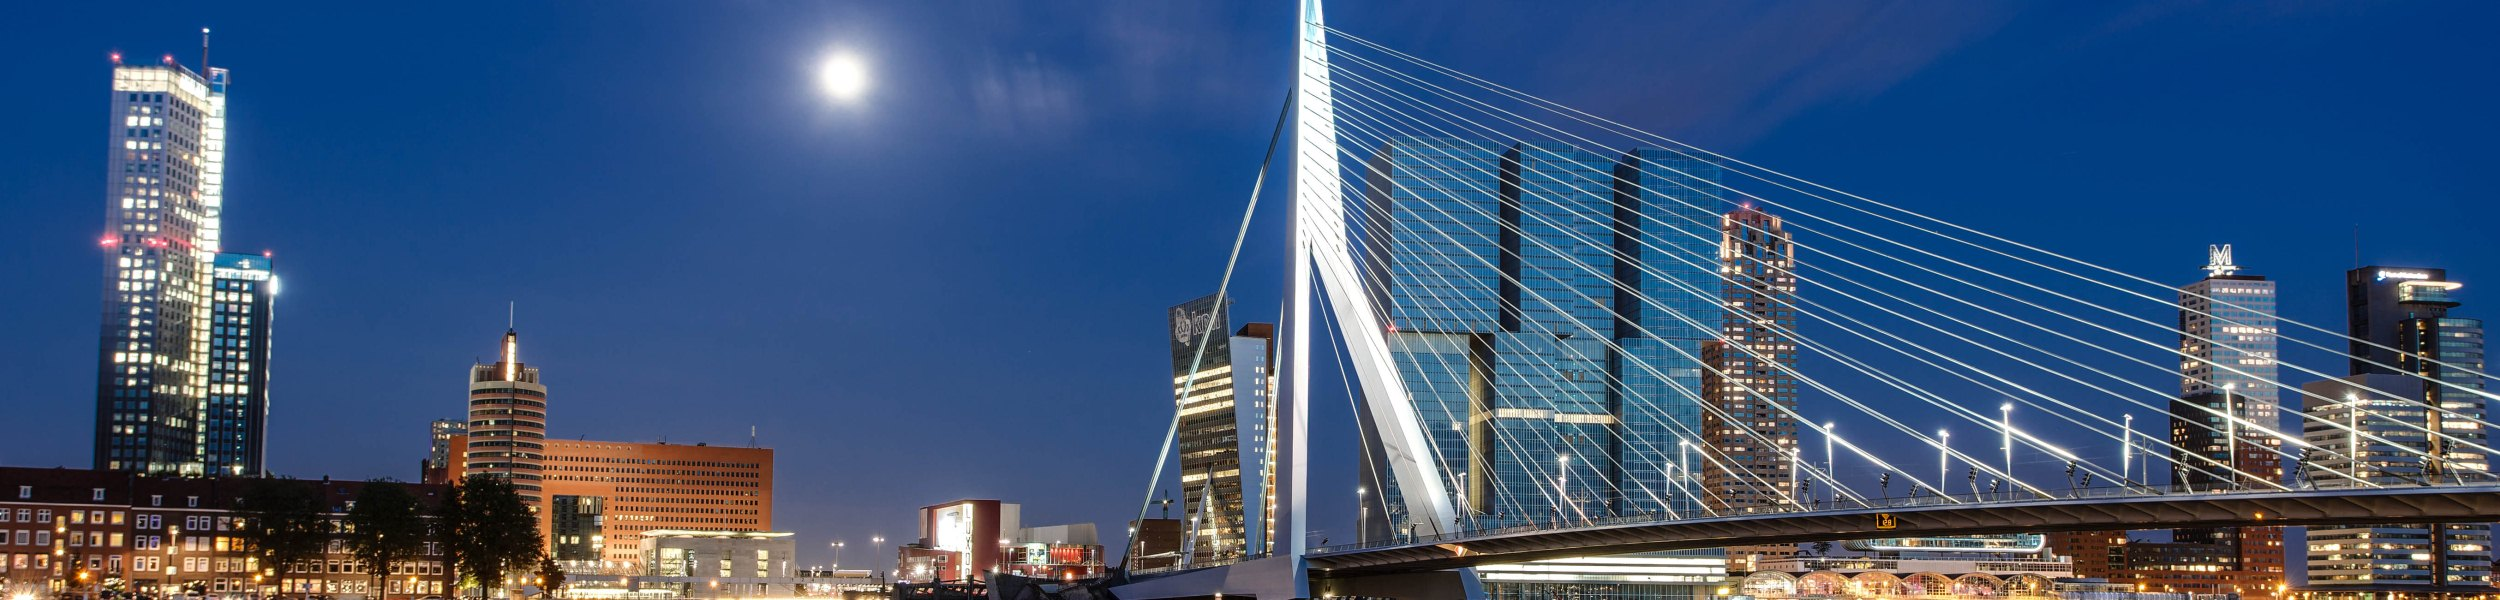 VP of Engineering Rotterdam, the Netherlands